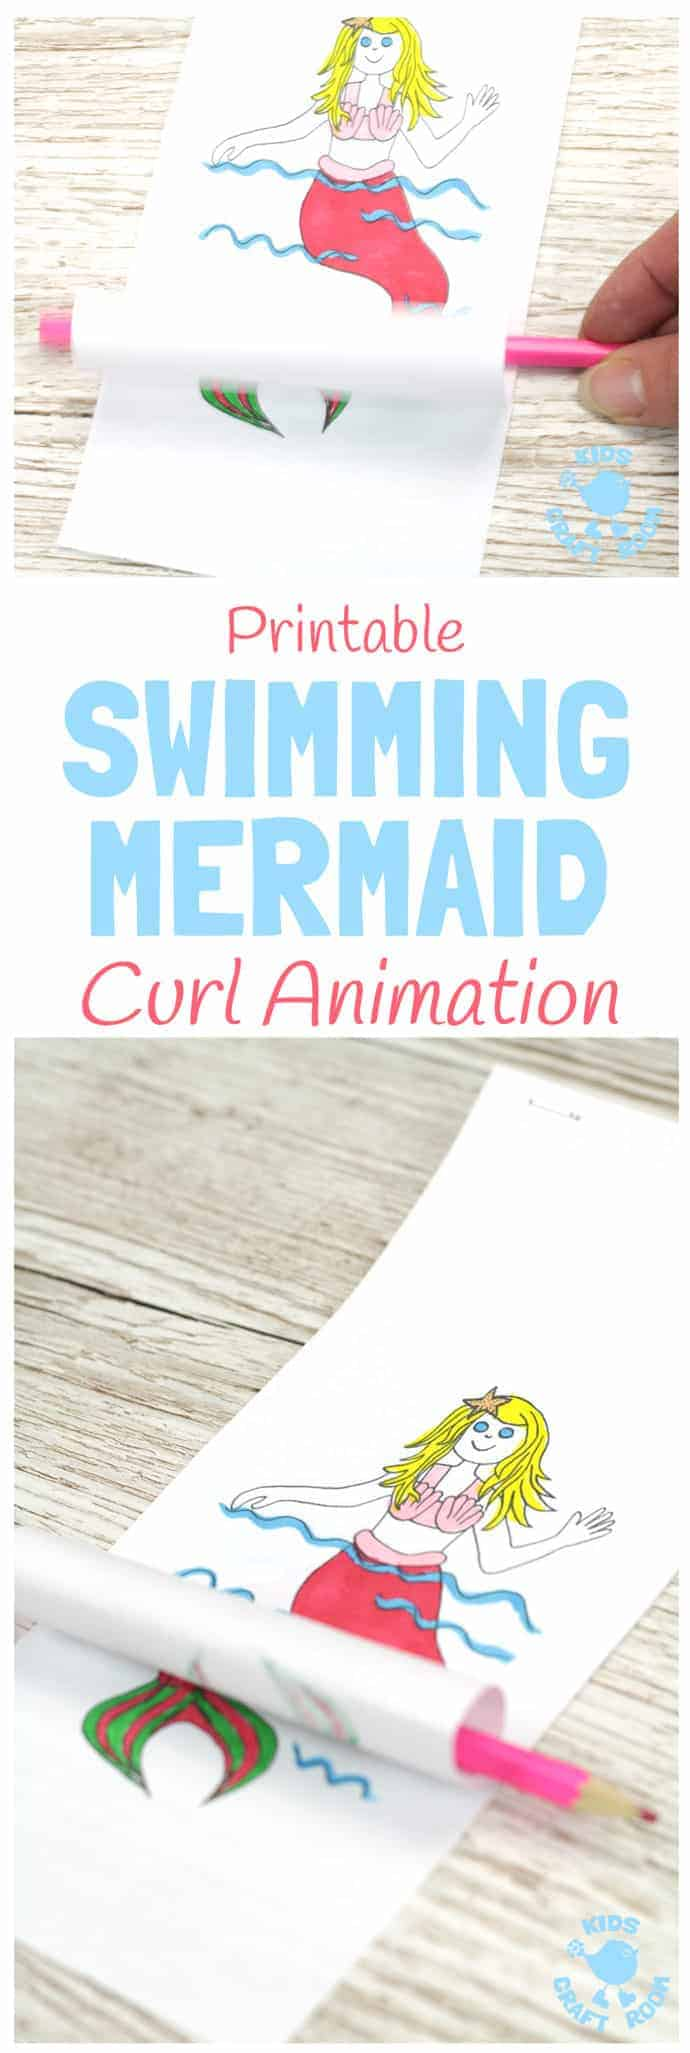 SWIMMING MERMAID CRAFT -PRINTABLE CURL ANIMATION. Print and colour the mermaid to make her wave and swish her tail! A fun interactive activity that introduces kids to the simple curl animation technique. #summercrafts #springcrafts #beachcrafts #mermaids #mermaidcrafts #animation #papercrafts #kidscrafts #craftsforkids #kidsactivities #kidscraftroom #printable #freeprintable #printables